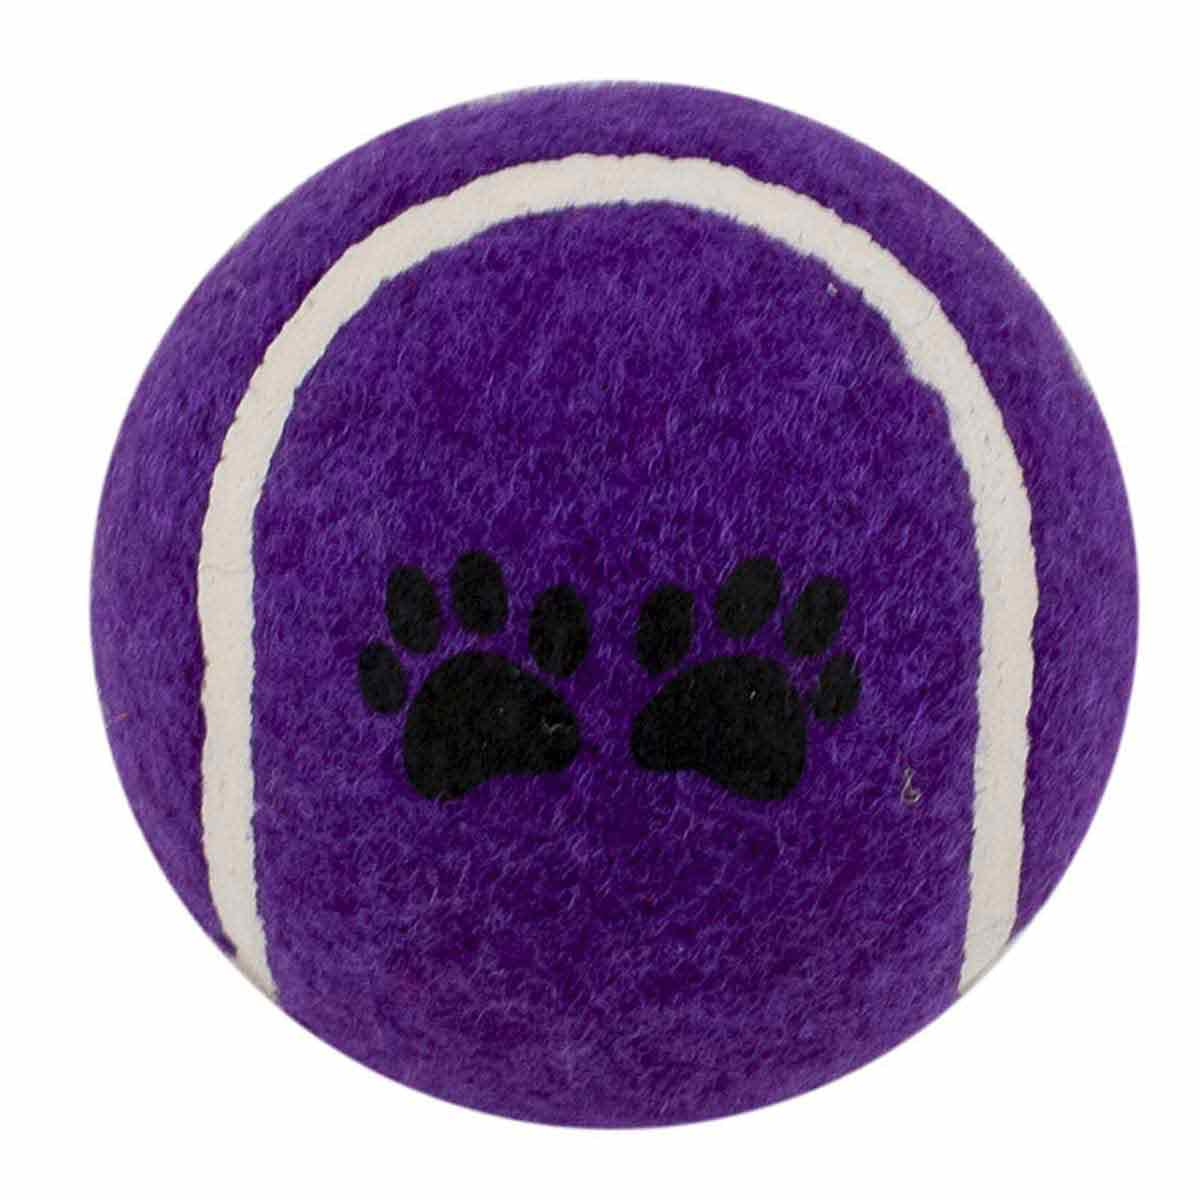 Purple Tennis Ball 2.5 inch Dog Toy